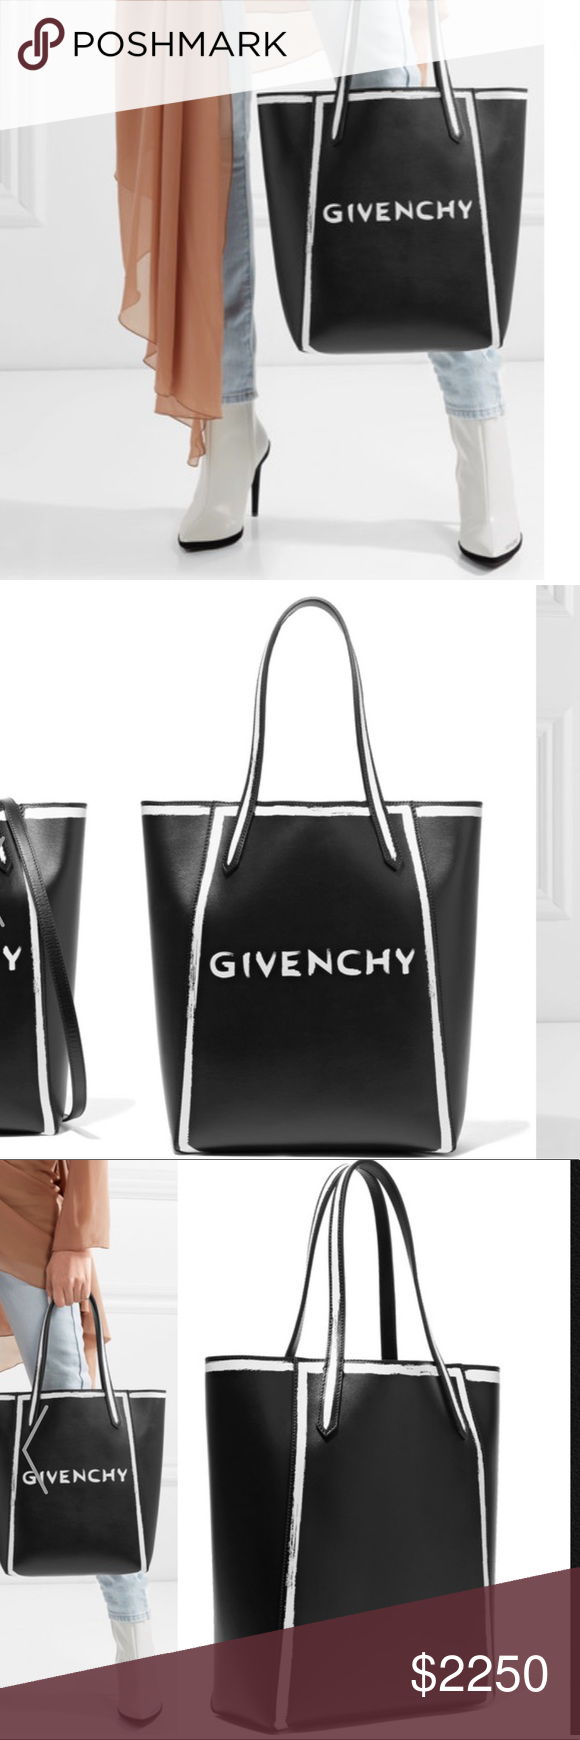 2c936062de10 Givenchy Stargate printed leather tote Brand new No Box! - Black and white  leather (